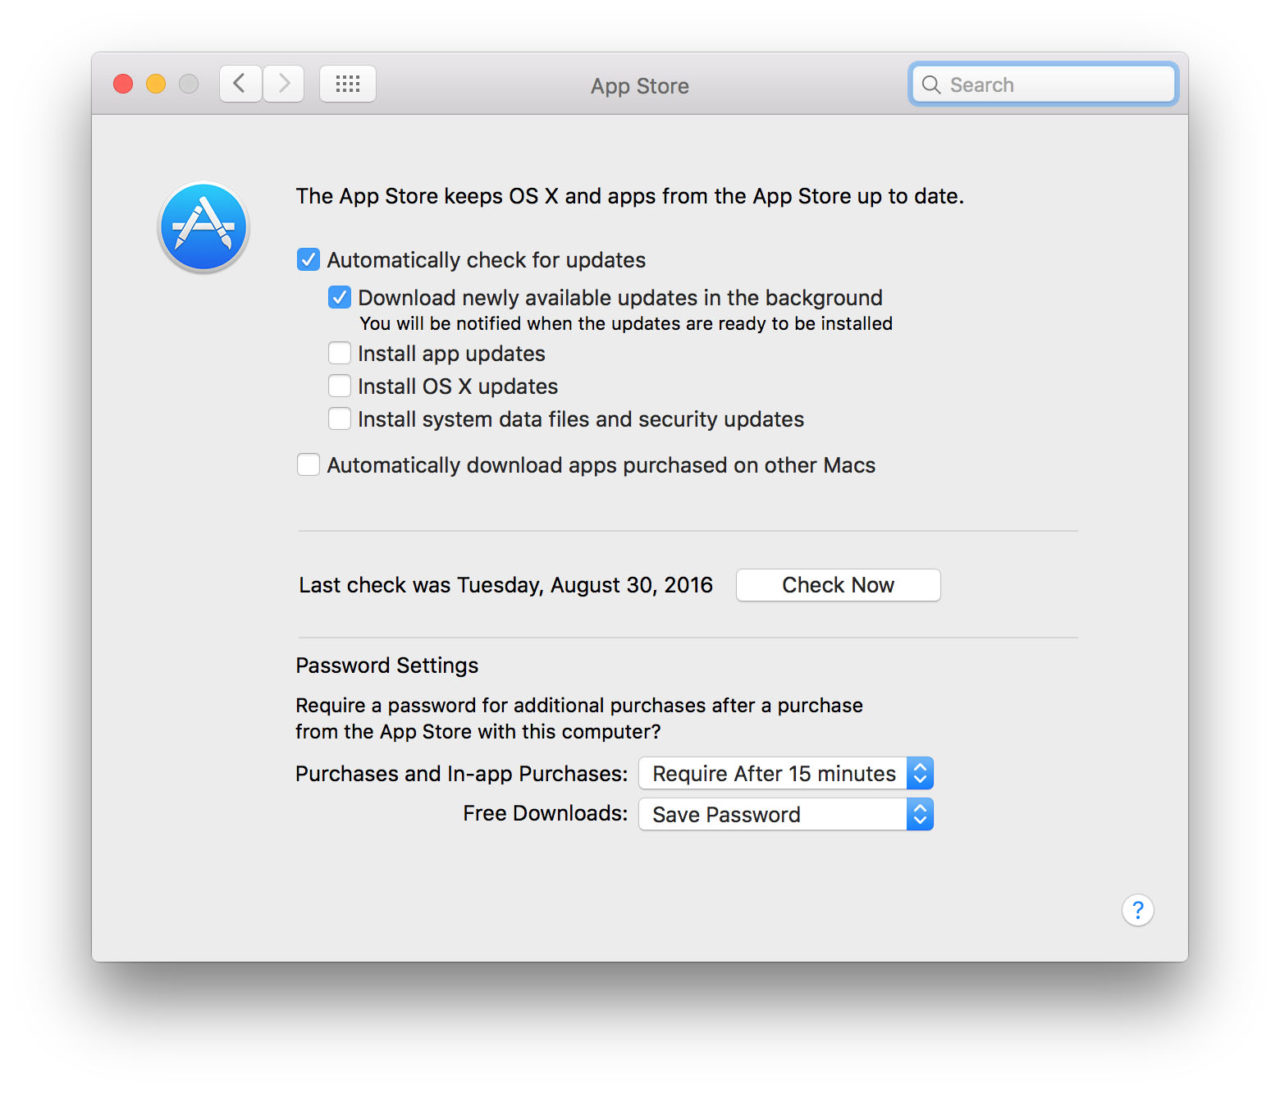 How to Make the Mac App Store Check for Updates More Frequently